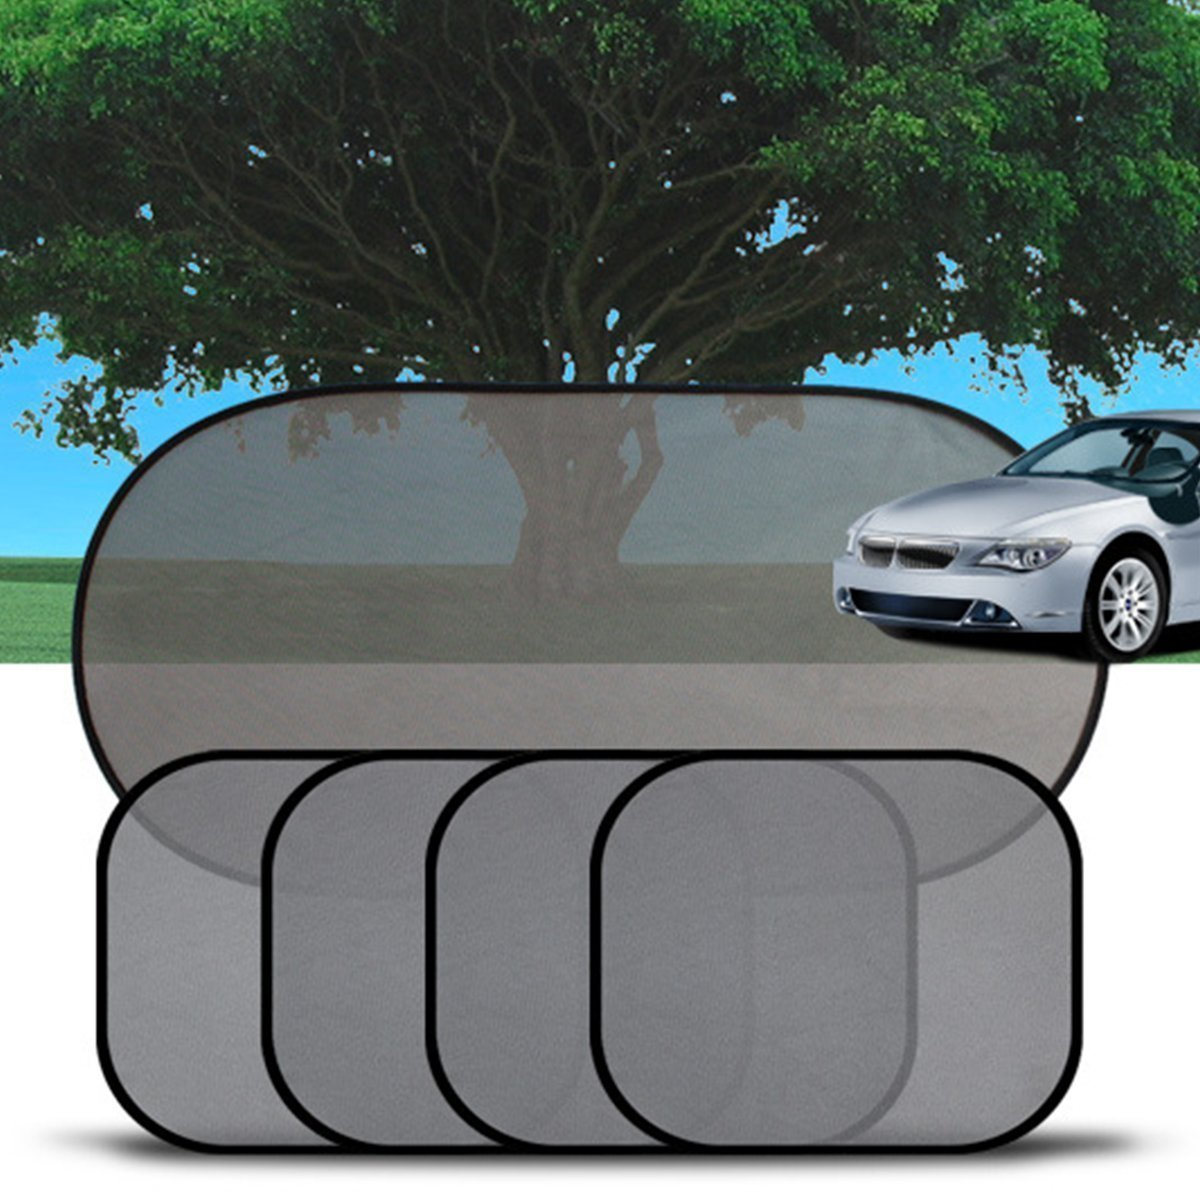 5 Pieces Child Sun Shade Car Sun Protection Car Sun Screen Car Sun Screens Baby,Kids & Pets Protection from Harmful UV Rays, Heat & Sun Glare - Cling Car Shades for Side Windows,Fits Most Cars, Black